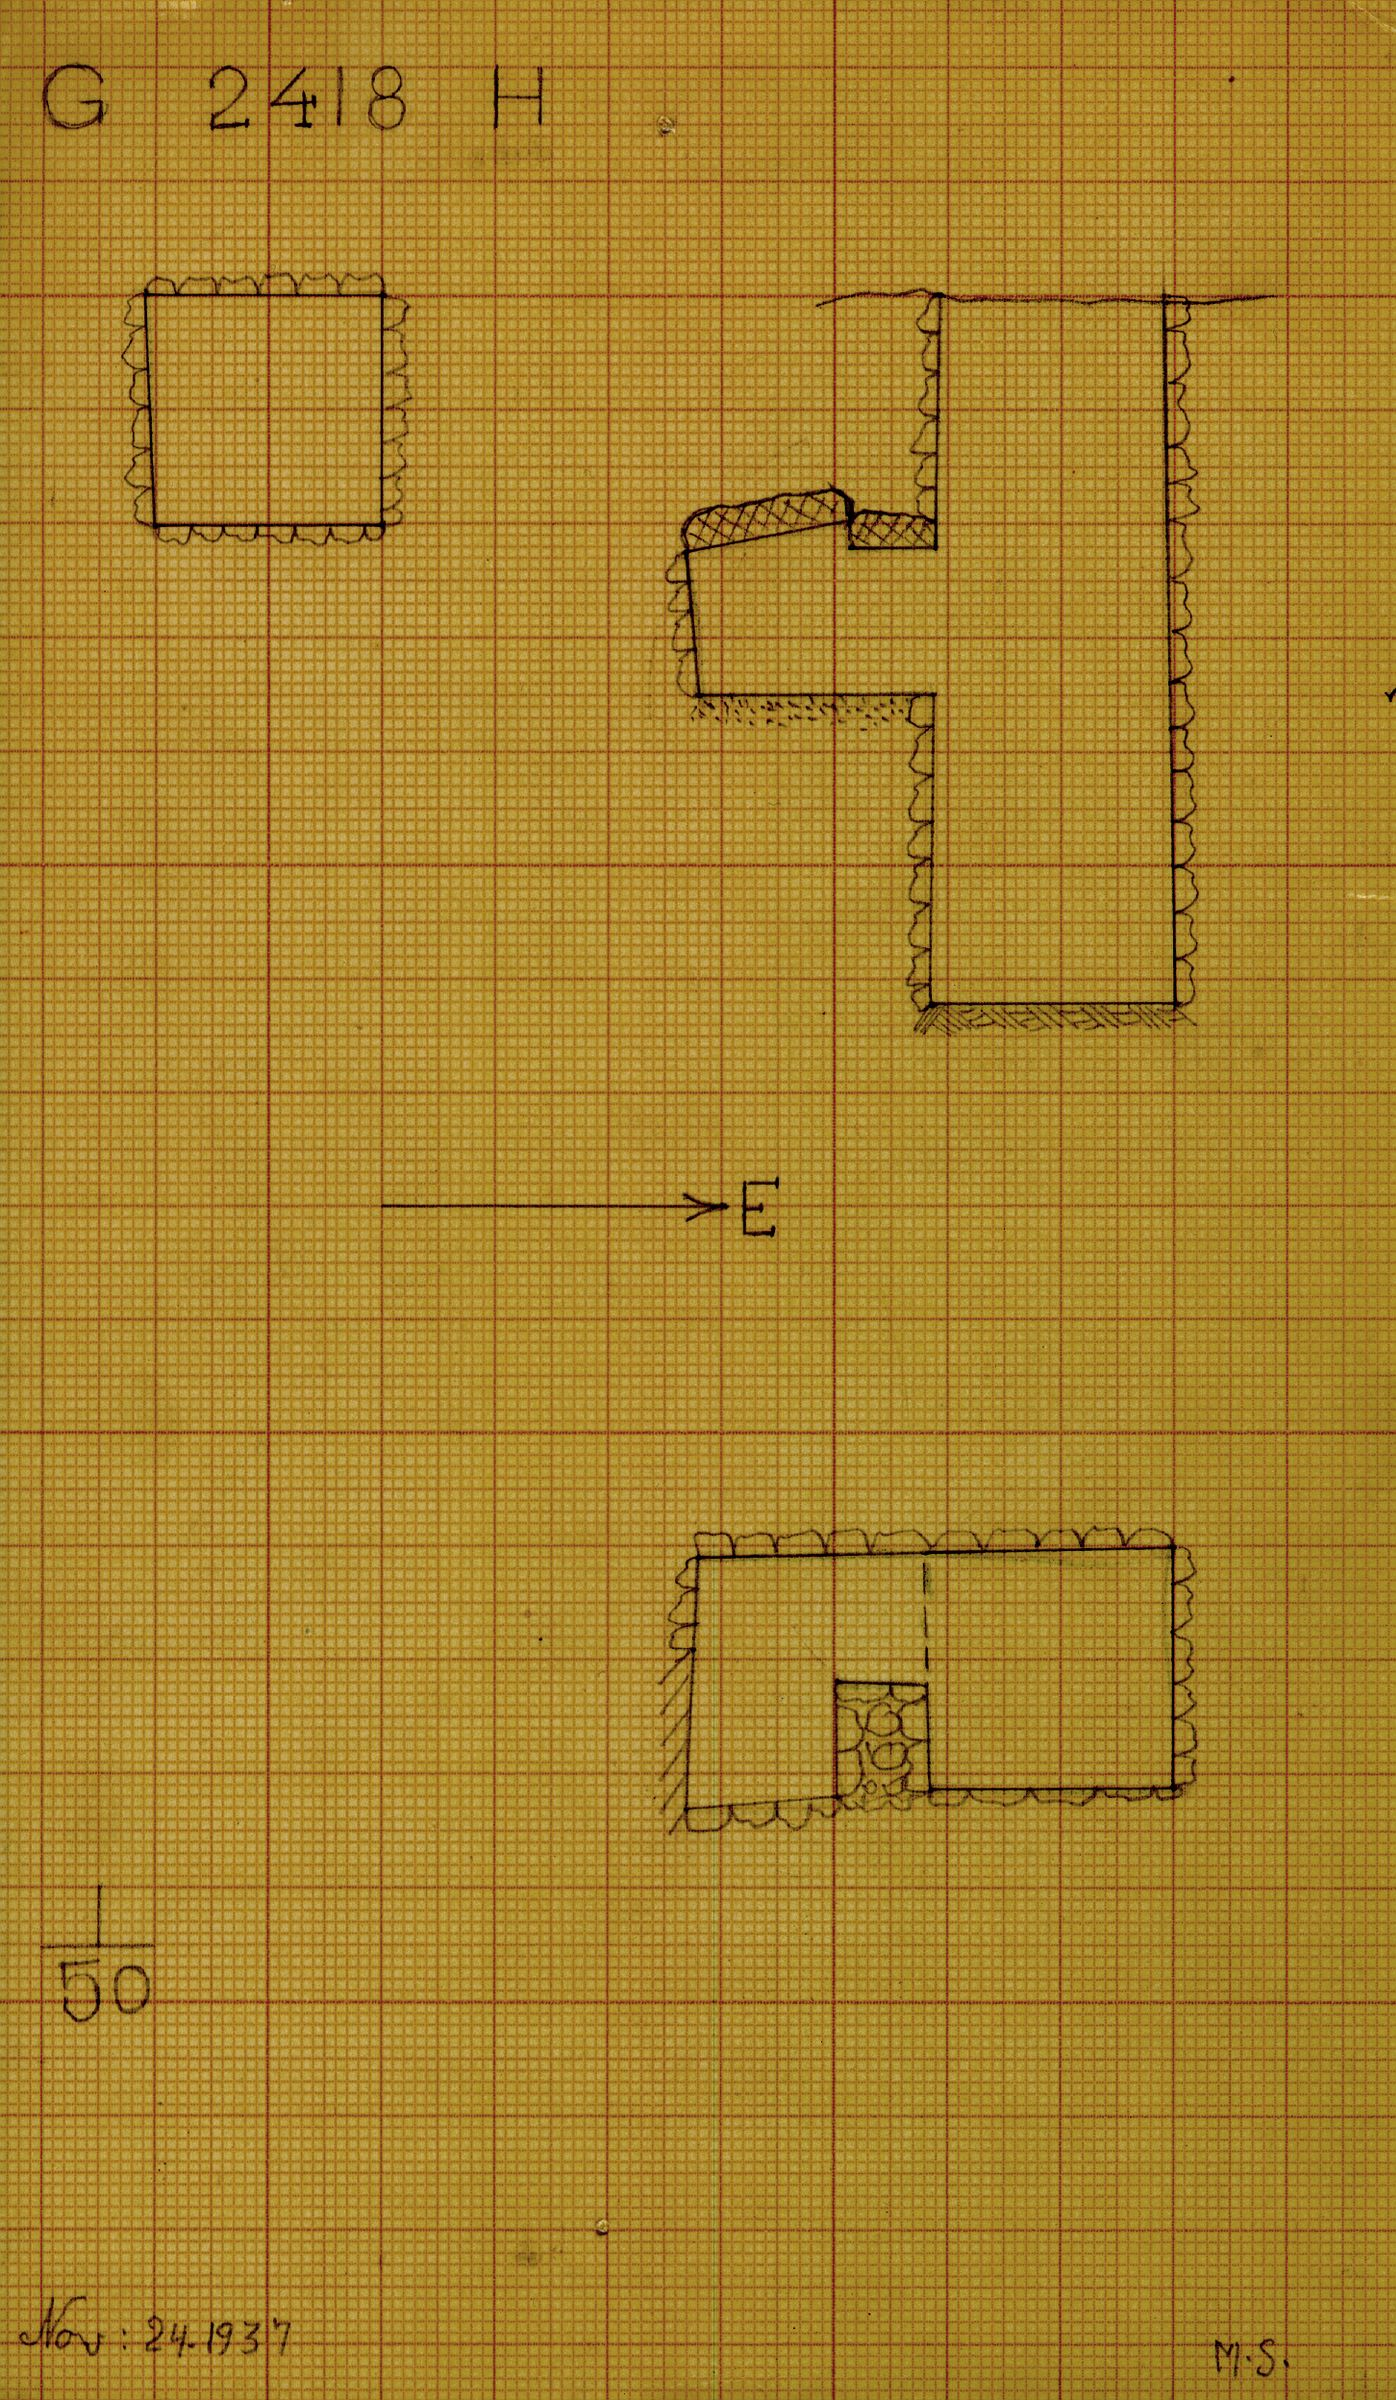 Maps and plans: G 2418, Shaft H